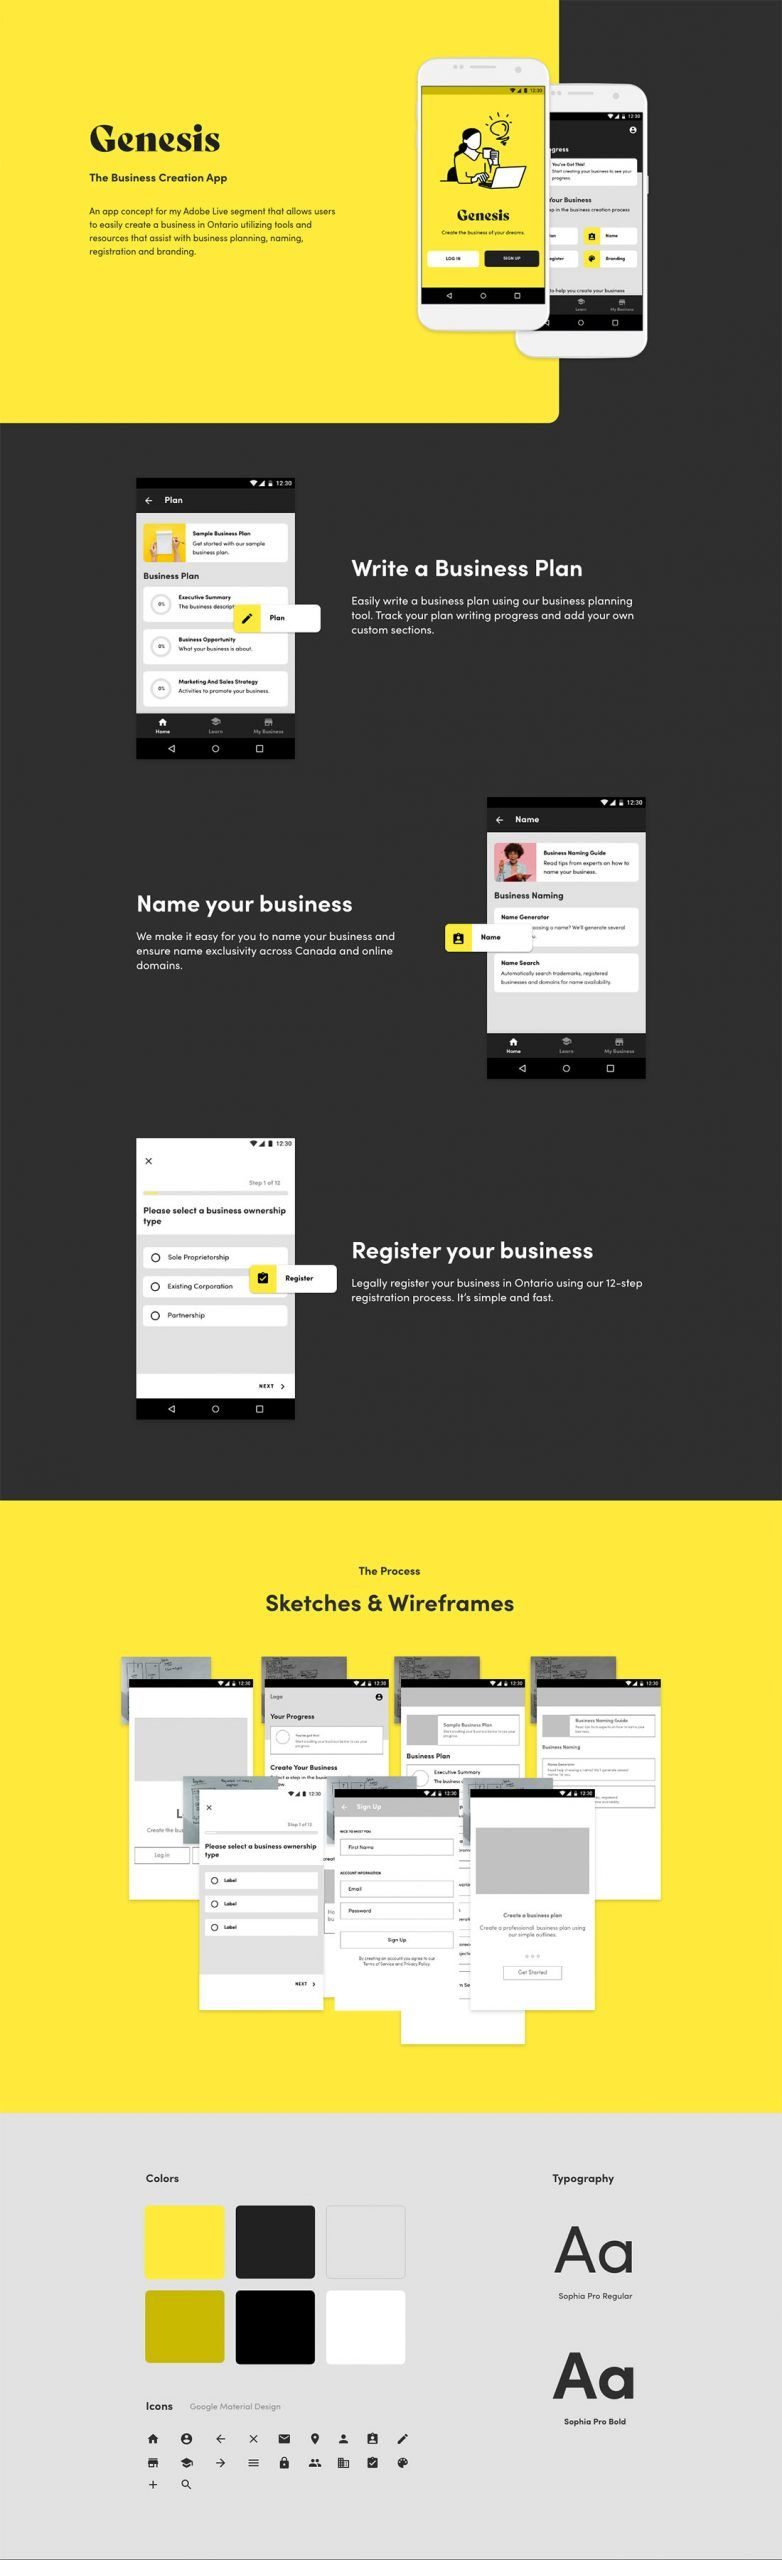 Genesis The Business Creation App Template Adobe XD in